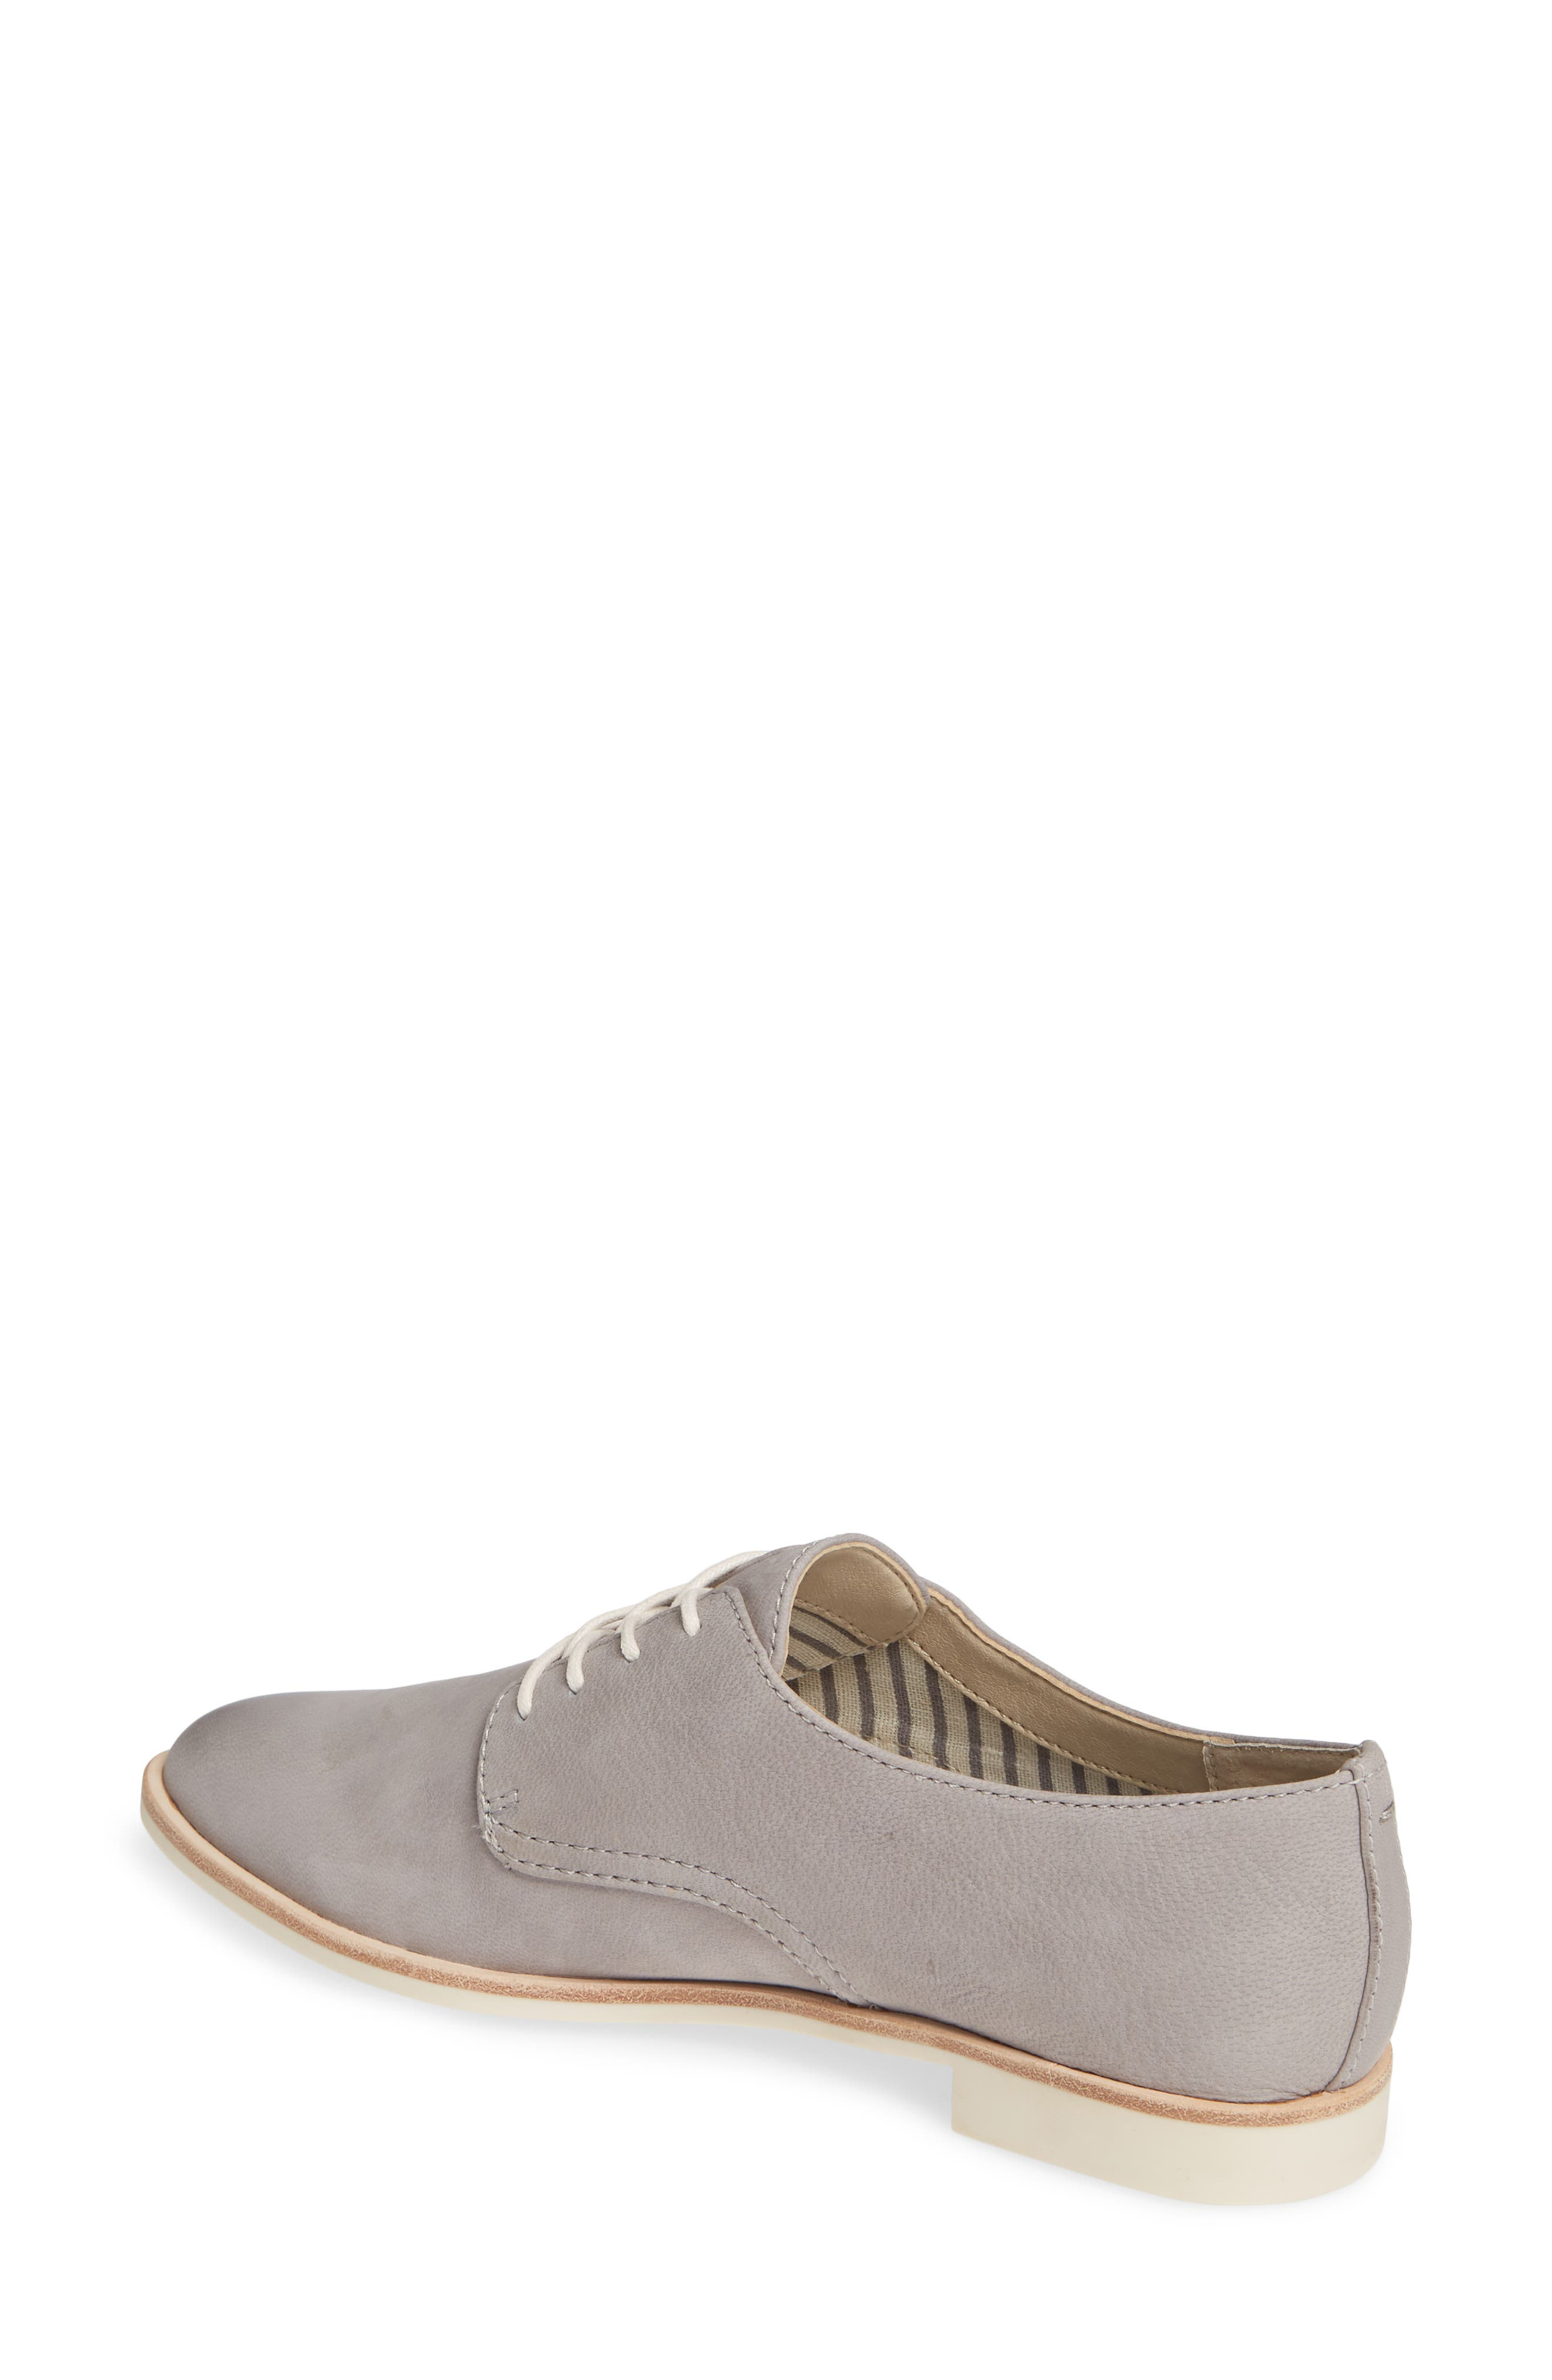 DOLCE VITA,                             Kyle Derby,                             Alternate thumbnail 2, color,                             GREY LEATHER